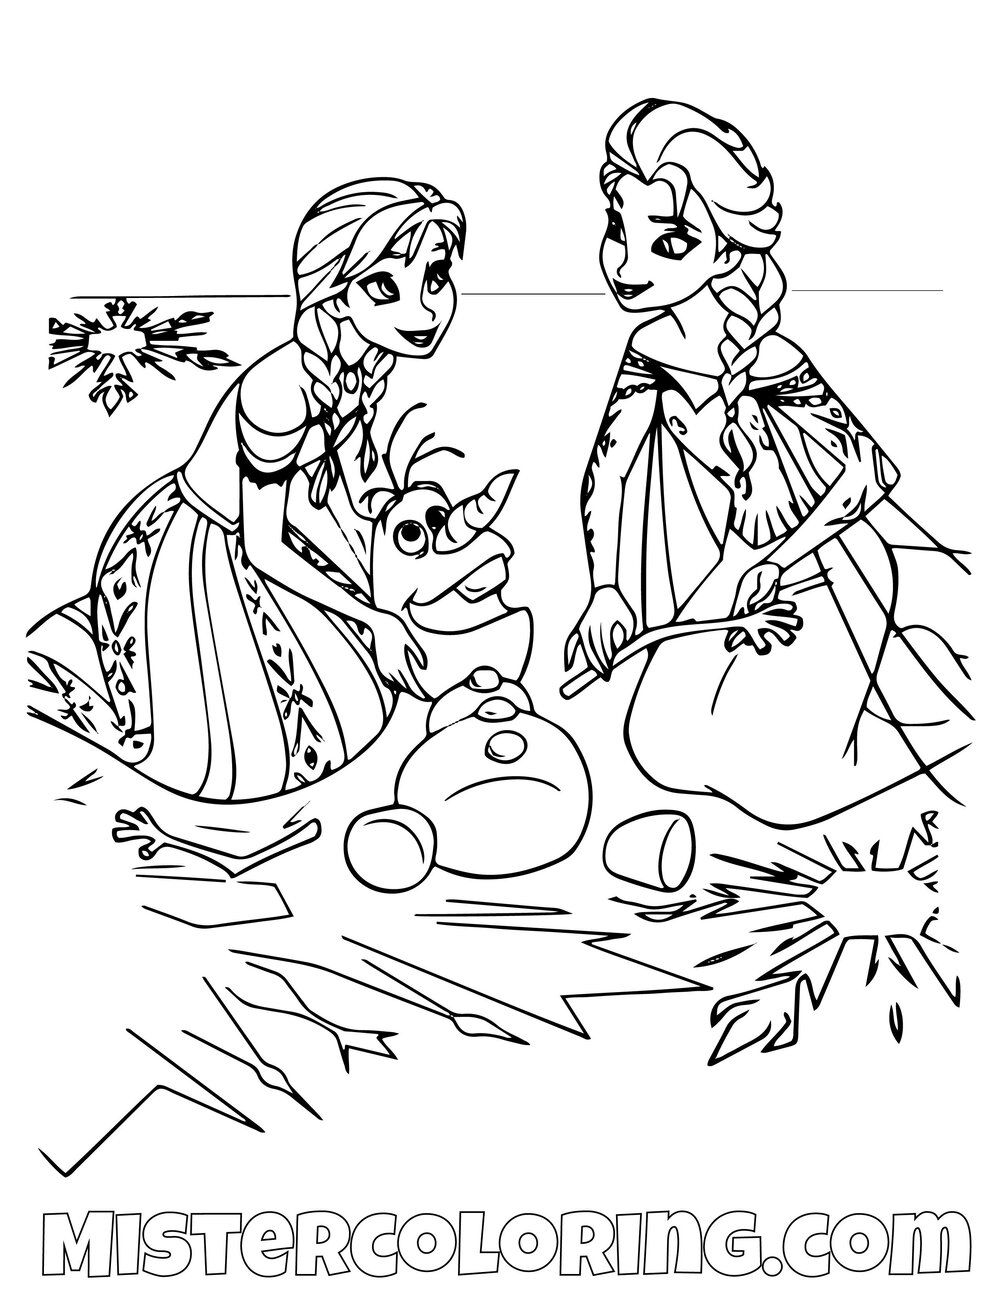 Queen Elsa And Princess Anna Fixing Olaf Frozen 2 Coloring Pages For Kids Elsa Coloring Pages Disney Coloring Pages Frozen Coloring Pages